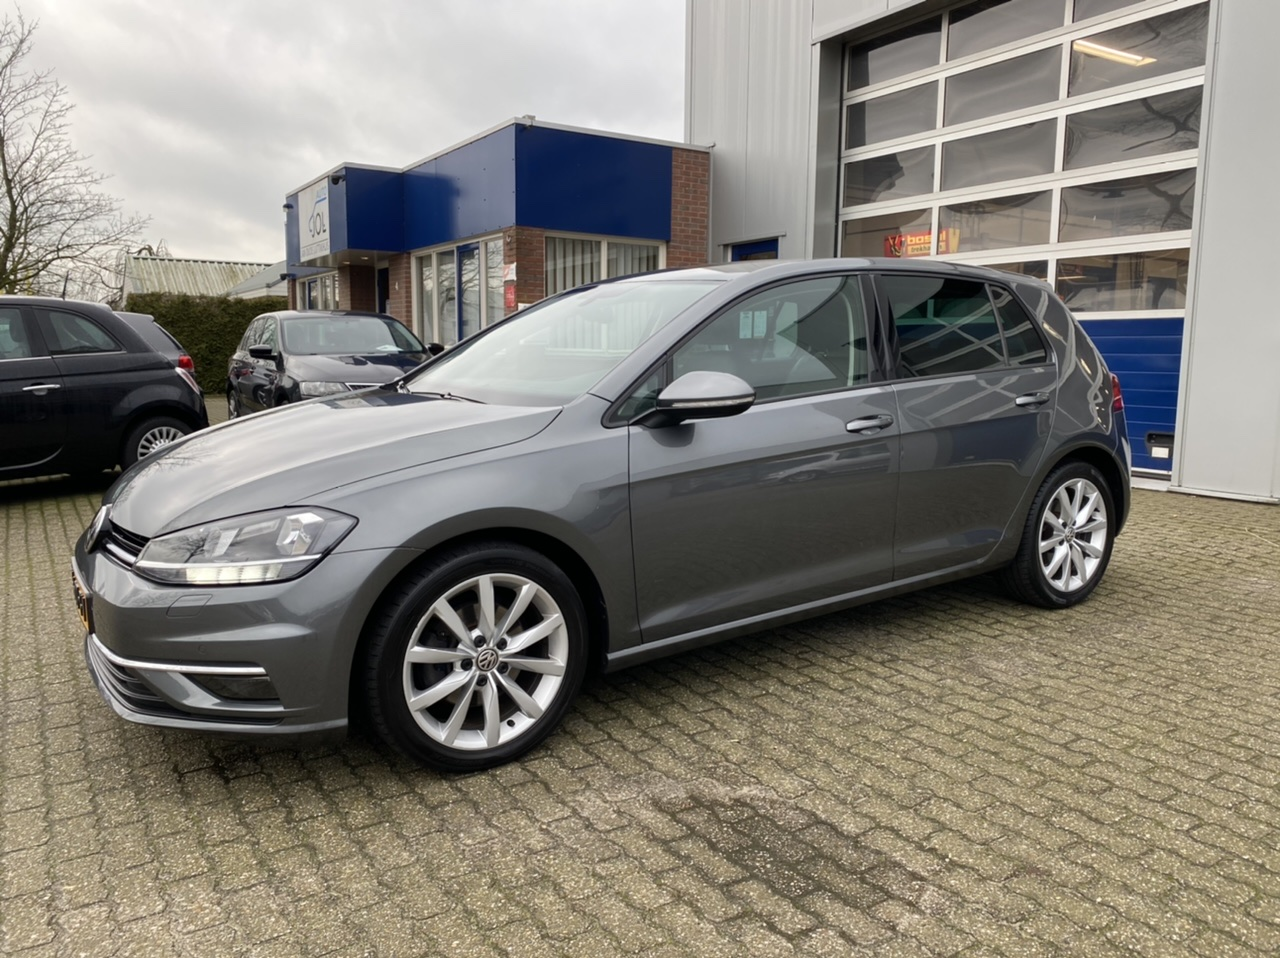 Volkswagen Golf 1.5 TSI HL Bns R - Adaptieve cruise control - automaat